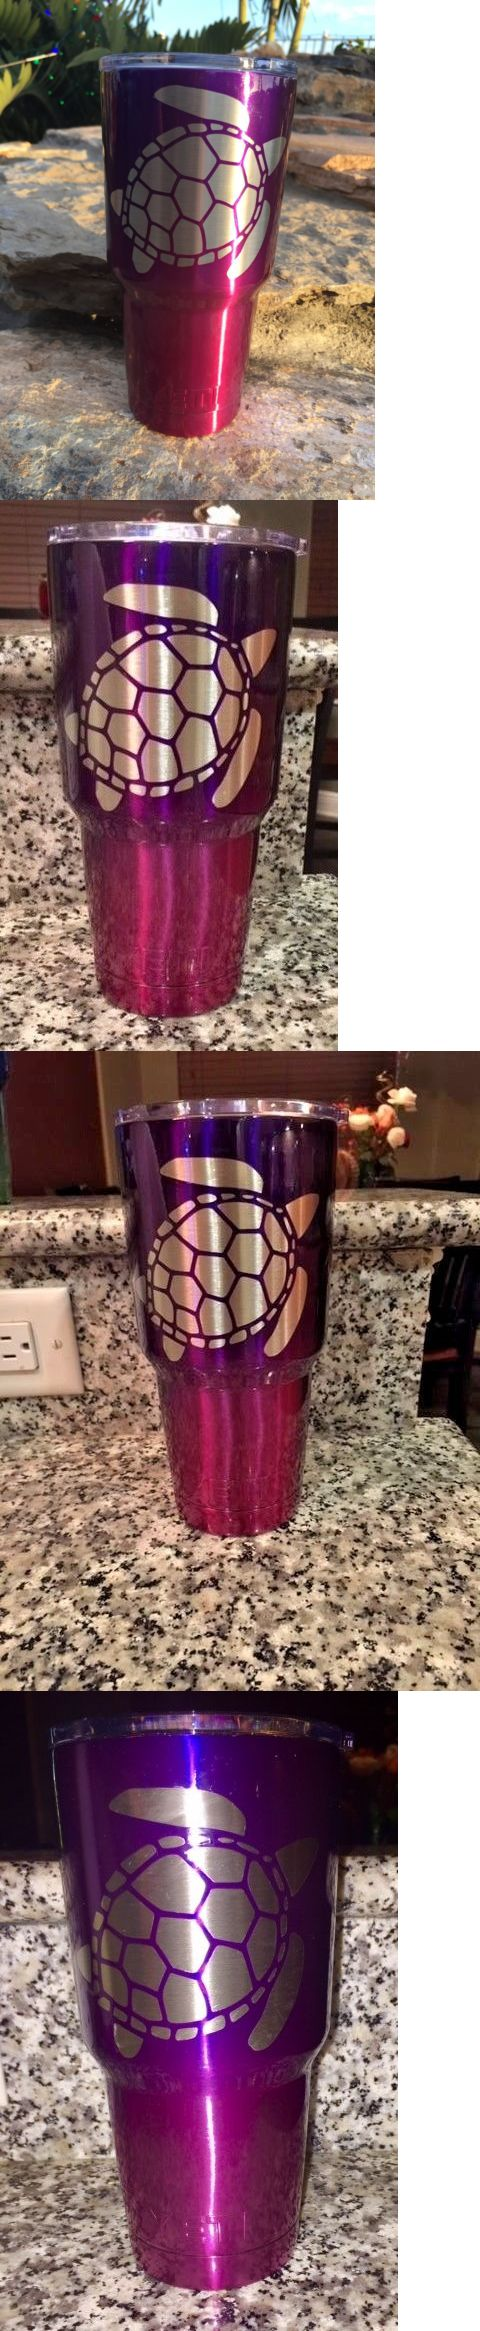 Other Camping Cooking Supplies 16036: Custom Powder Coated Yeti 30 Oz Rambler With Sea Turtle Logo Purple Pink -> BUY IT NOW ONLY: $48.52 on eBay!